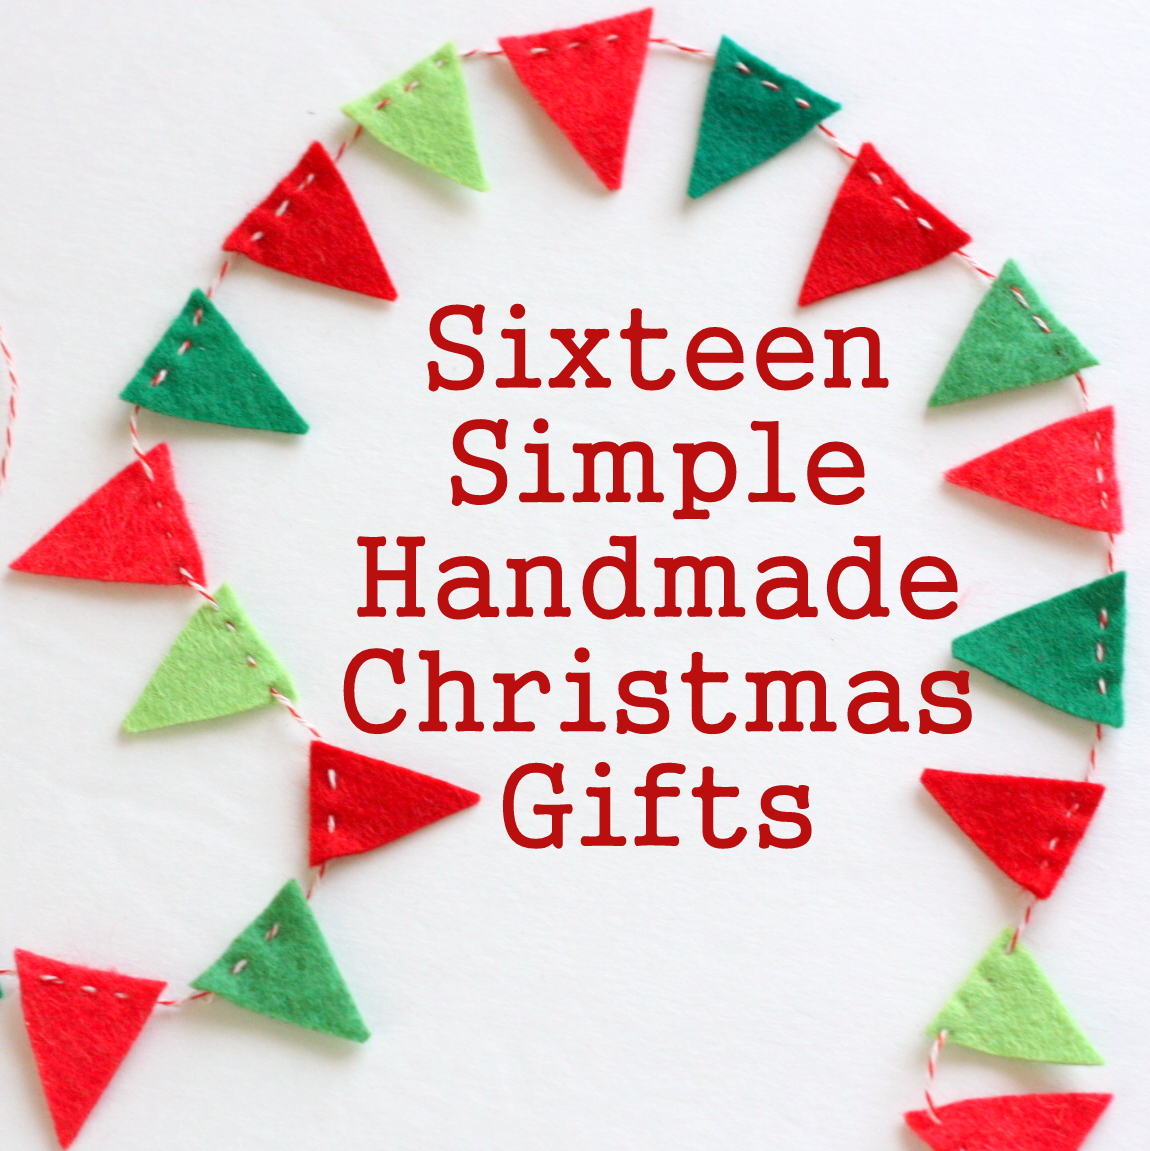 simple woodworking projects for christmas presents | Woodworking ...